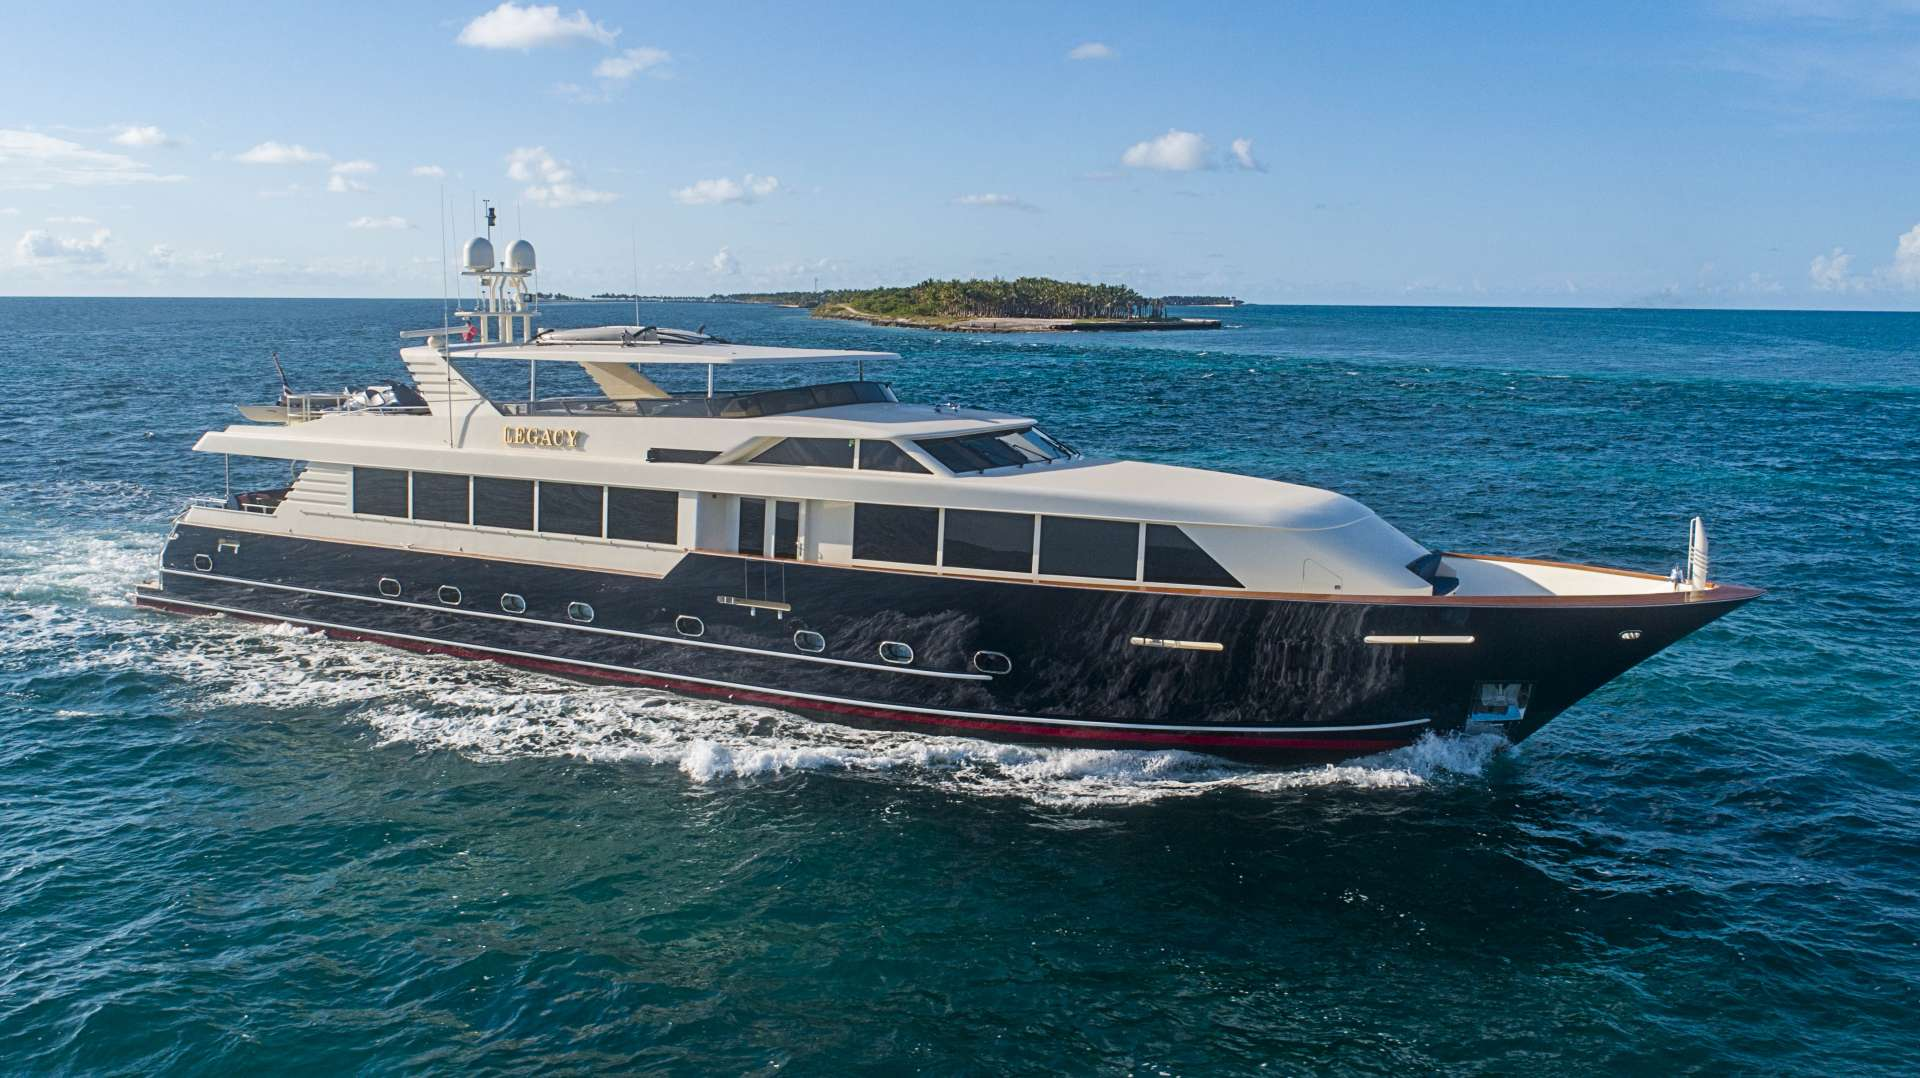 Power Yacht 'Power', 8 PAX, 5 Crew, 118.00 Ft, 35.00 Meters, Built 2000, Broward, Refit Year 2019